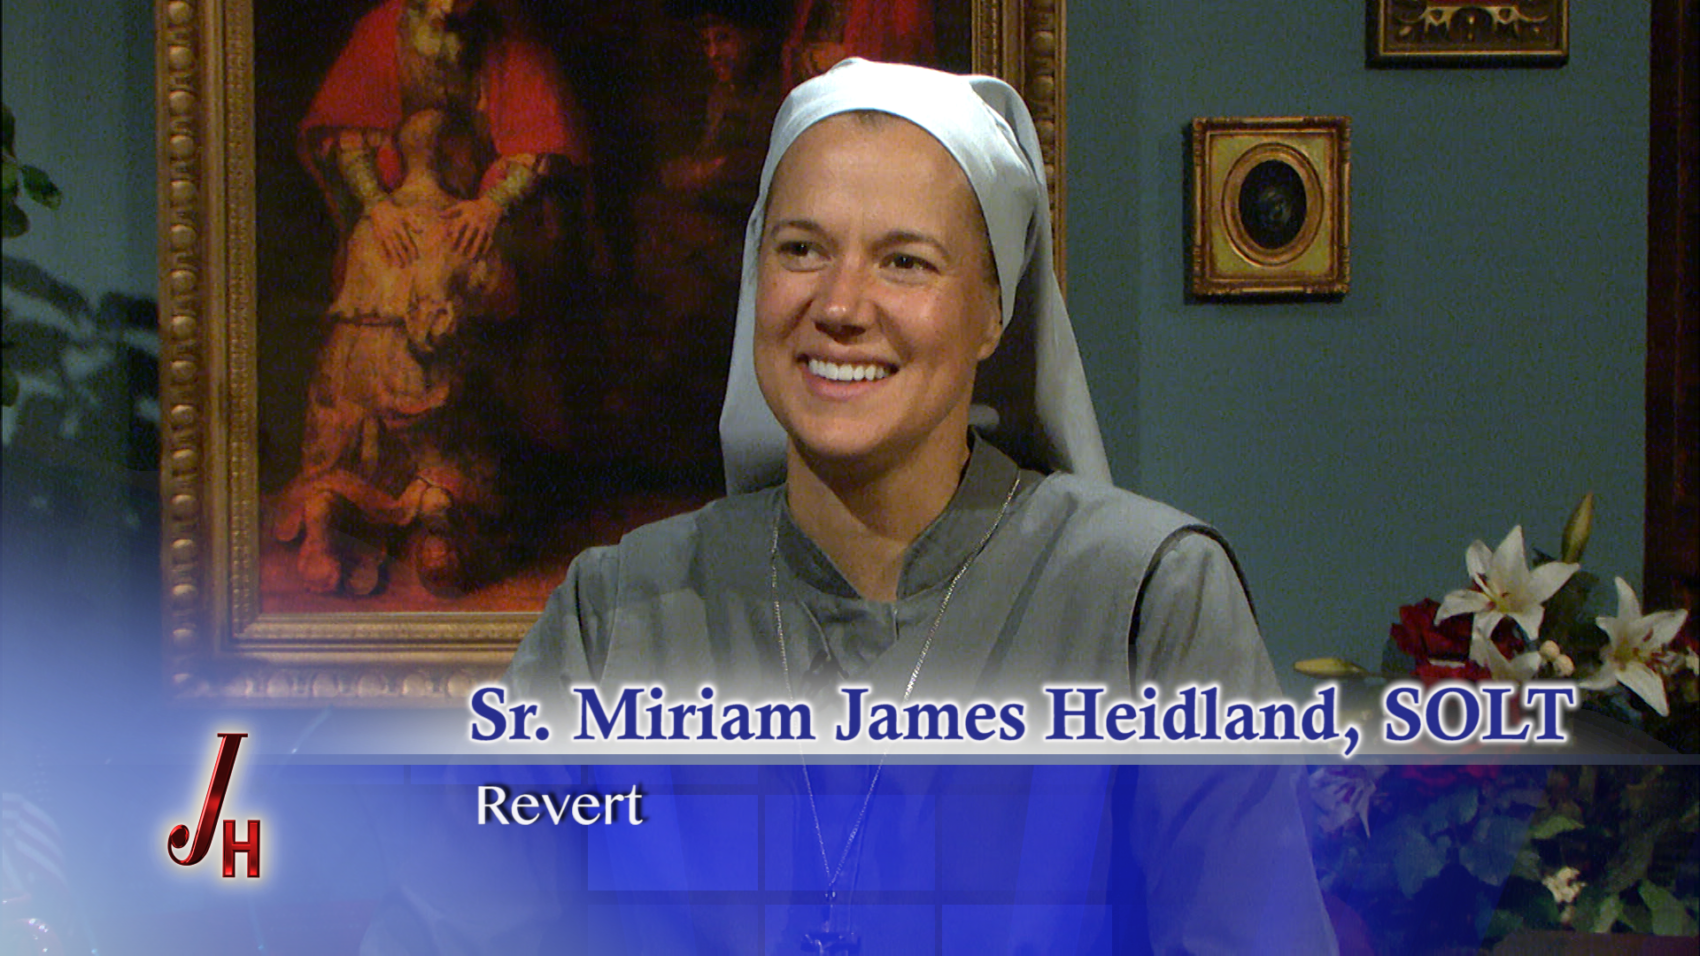 Sr miriam james